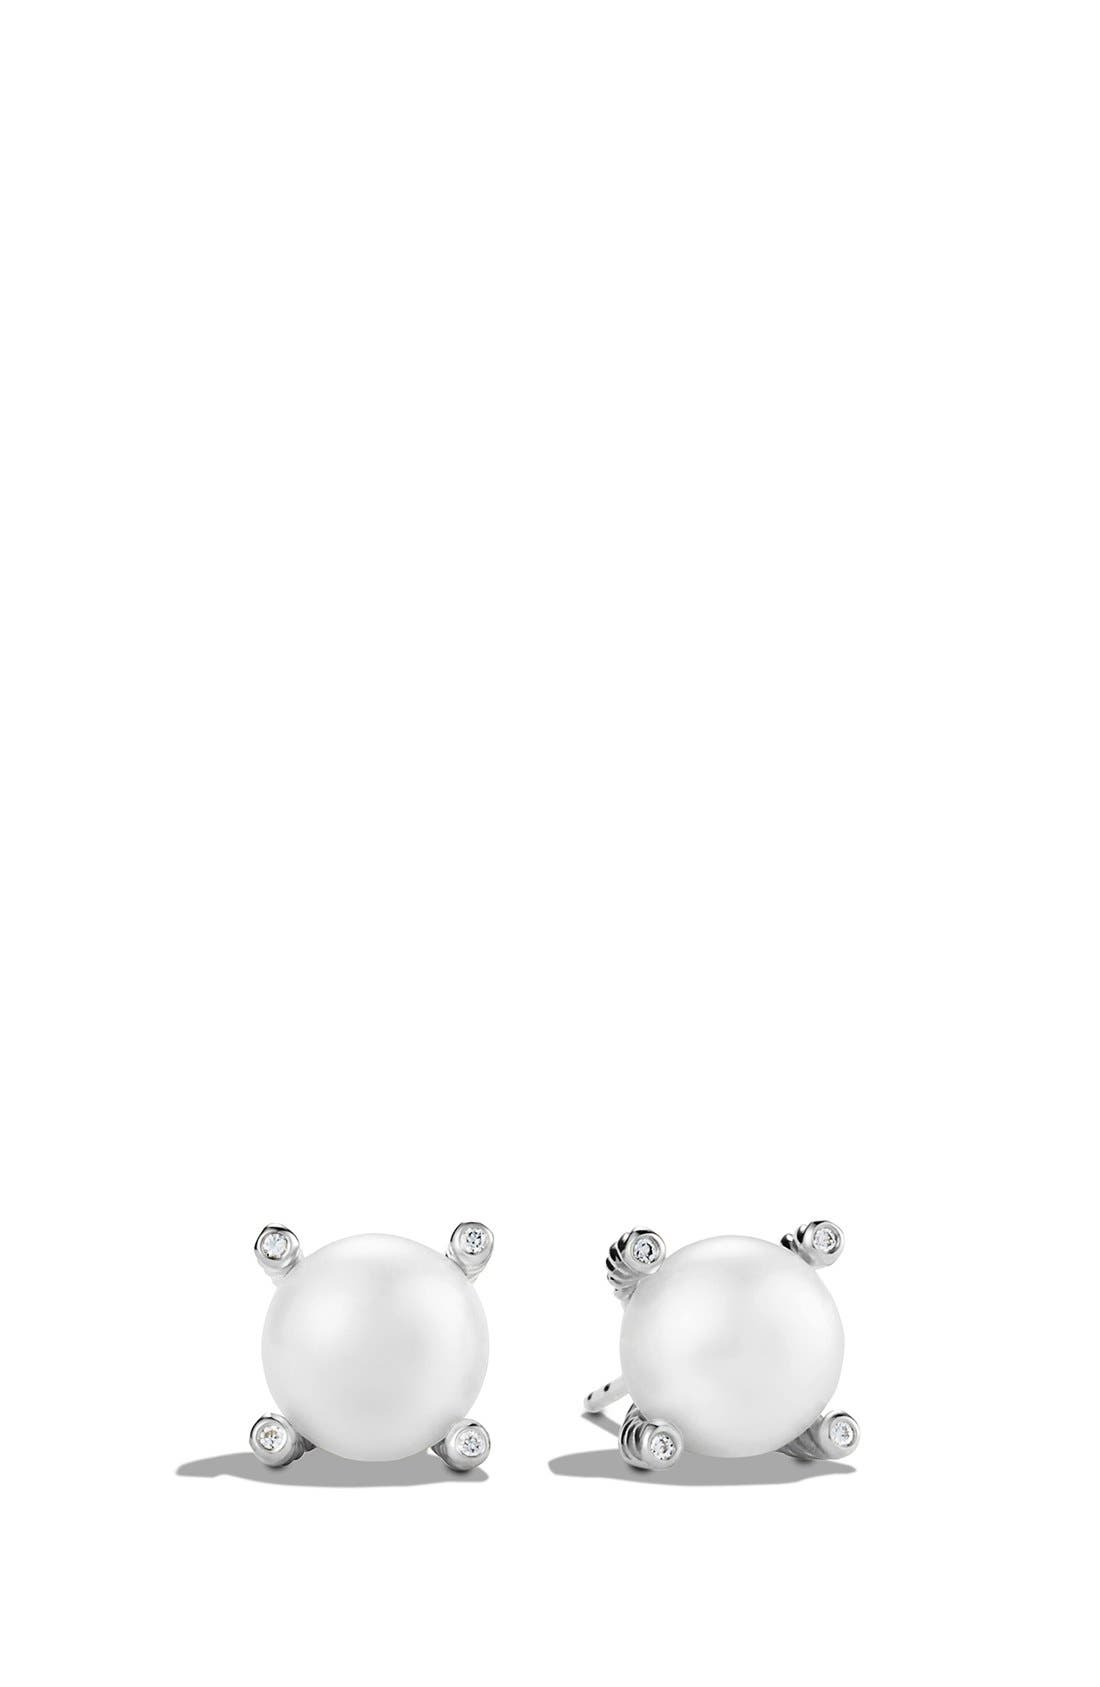 Pearl & Diamond Stud Earrings,                         Main,                         color, Silver Pearl